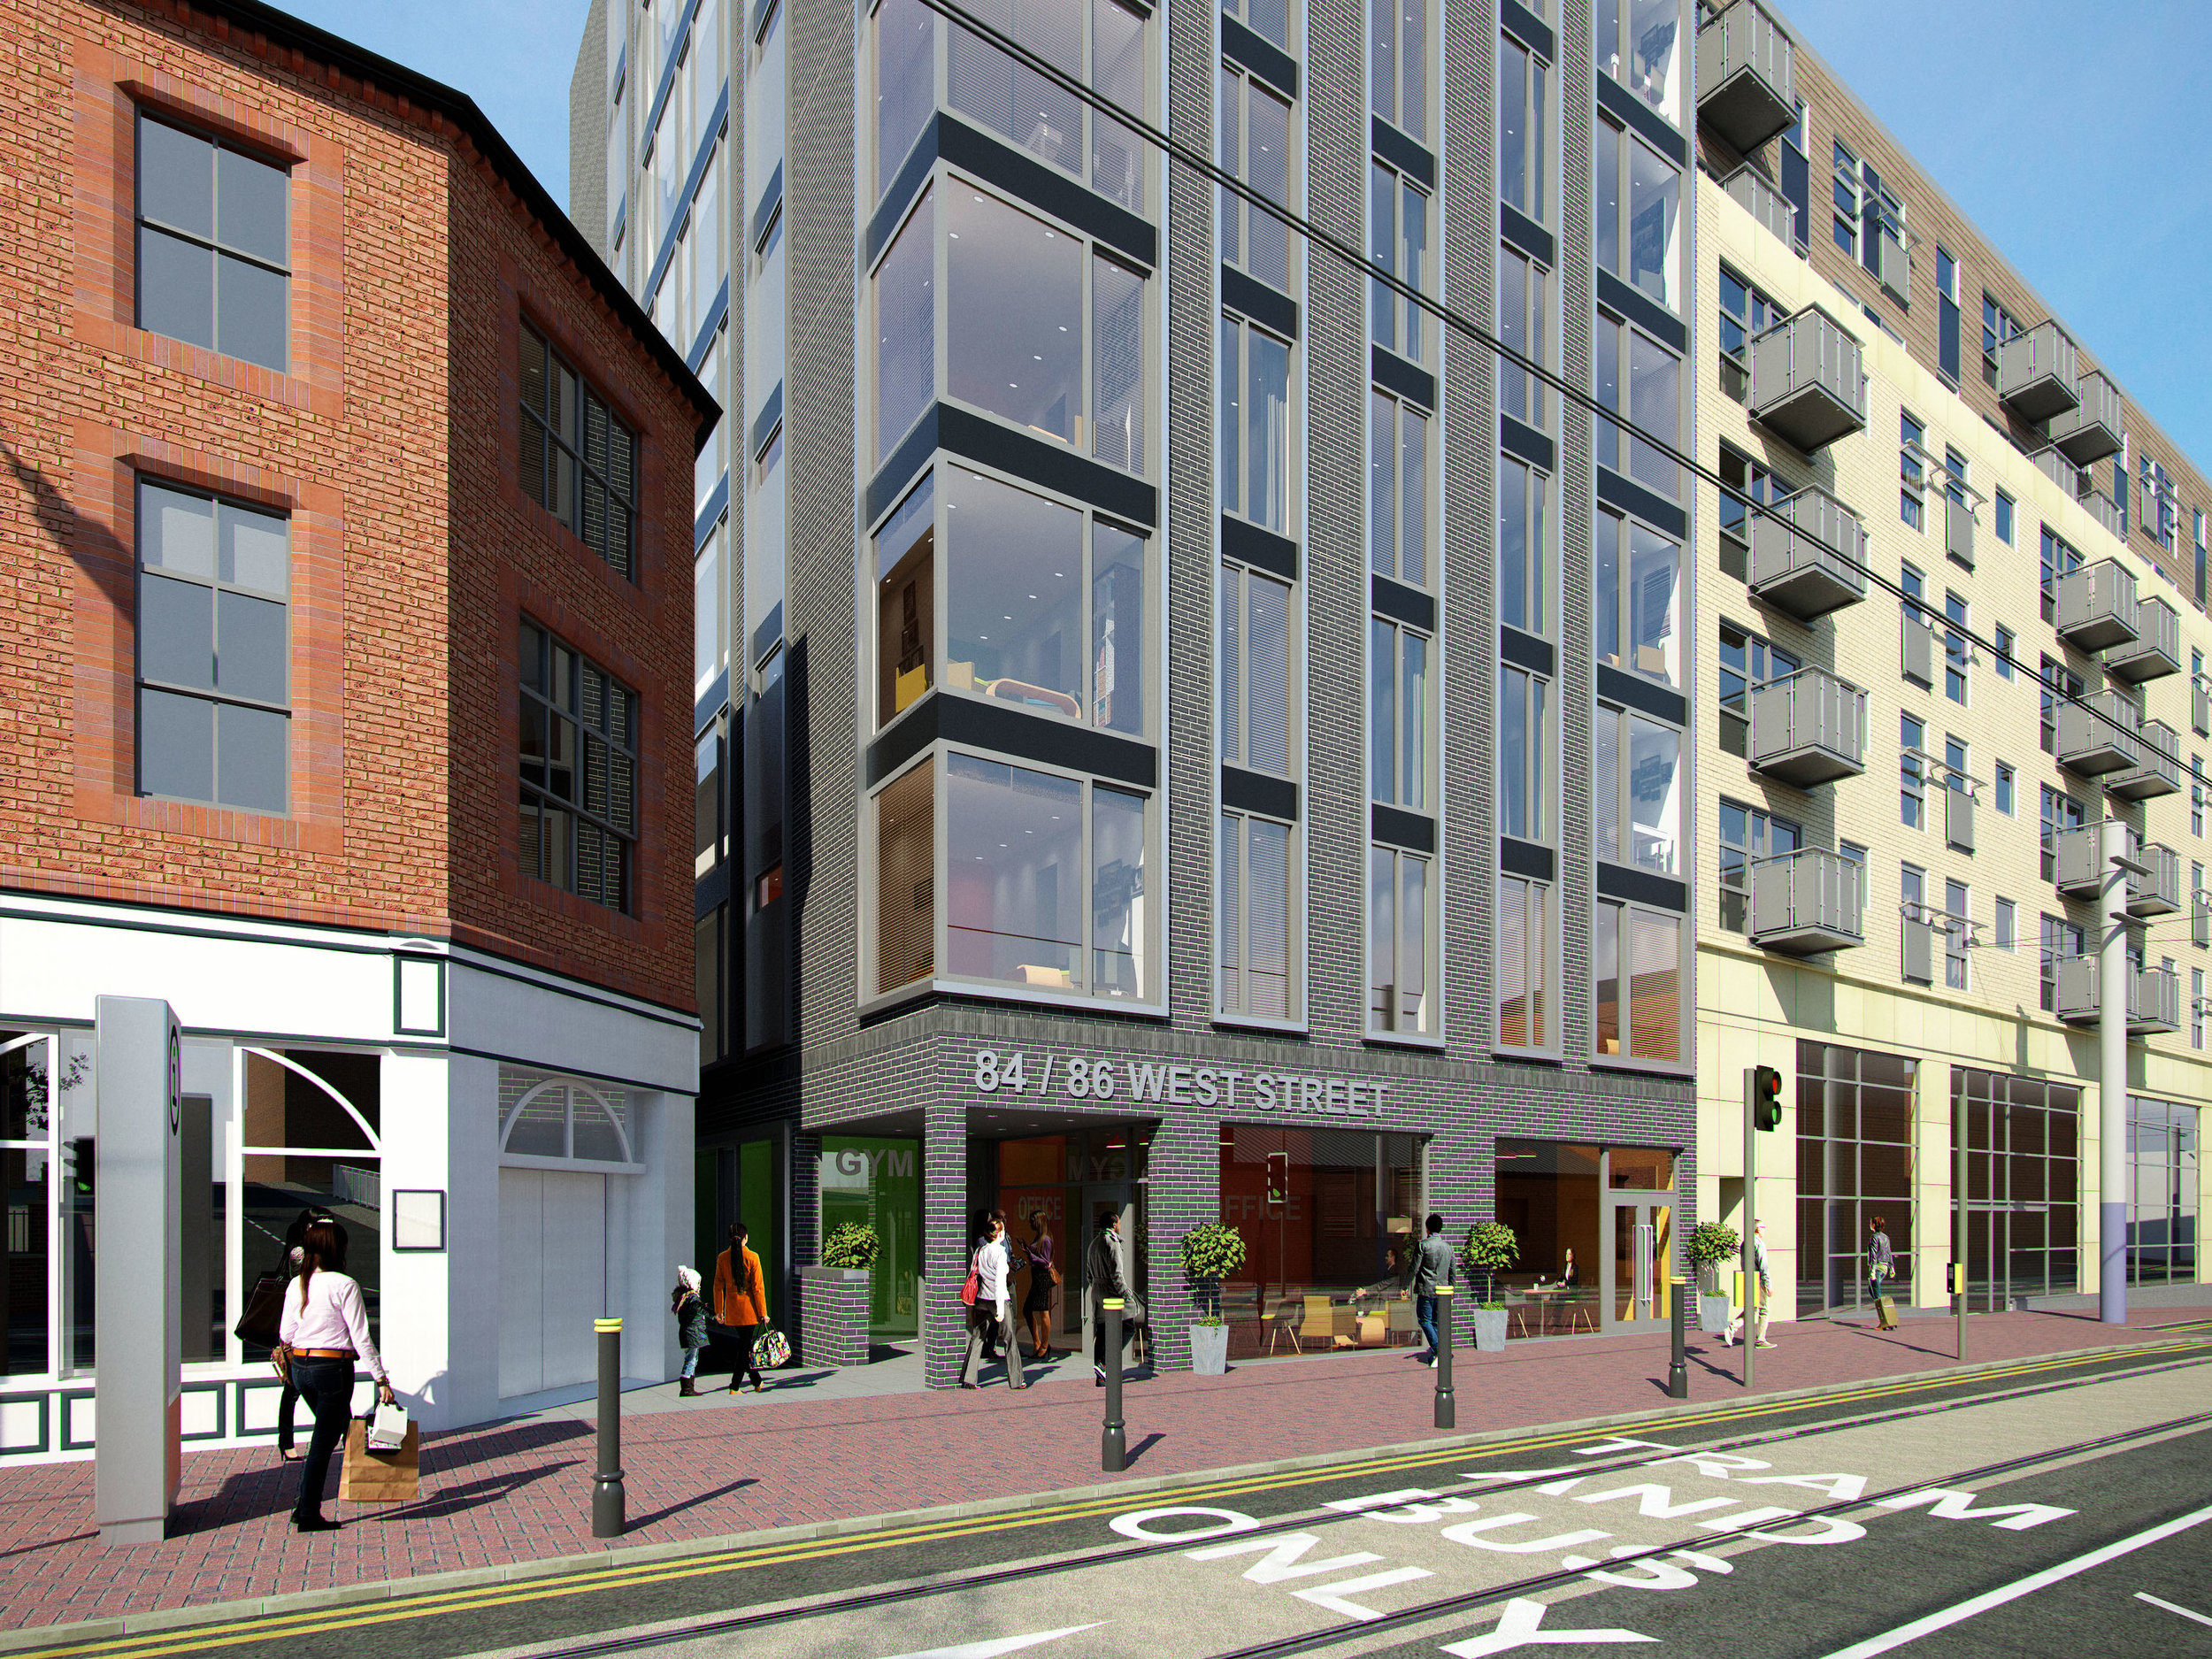 Apartments:West Street, Sheffield (planning approved)